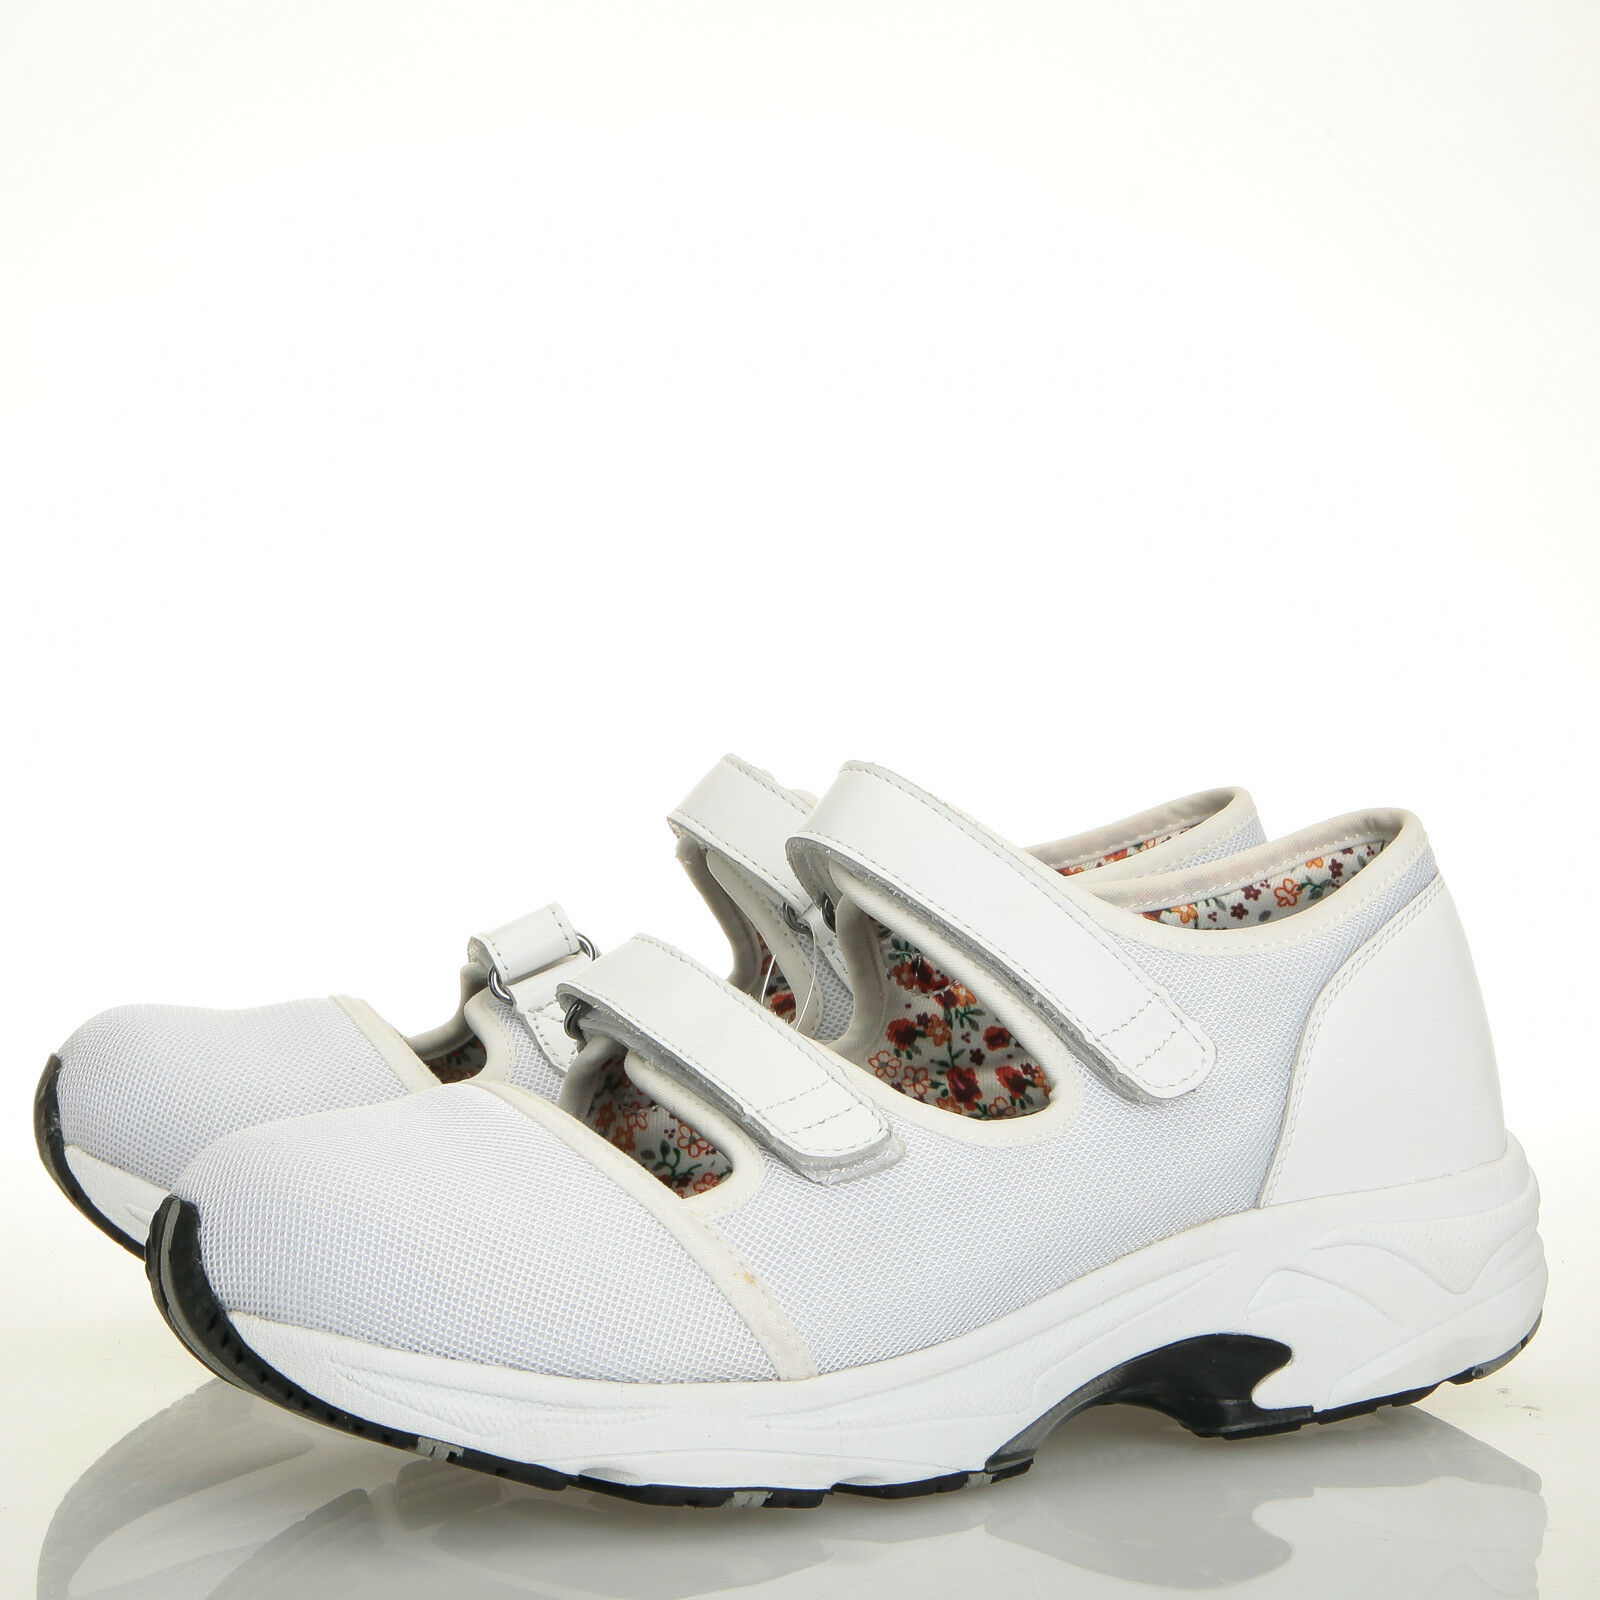 Drew Solo White Sport Mesh Therapeutic Walking shoes - Womens 11.5 M